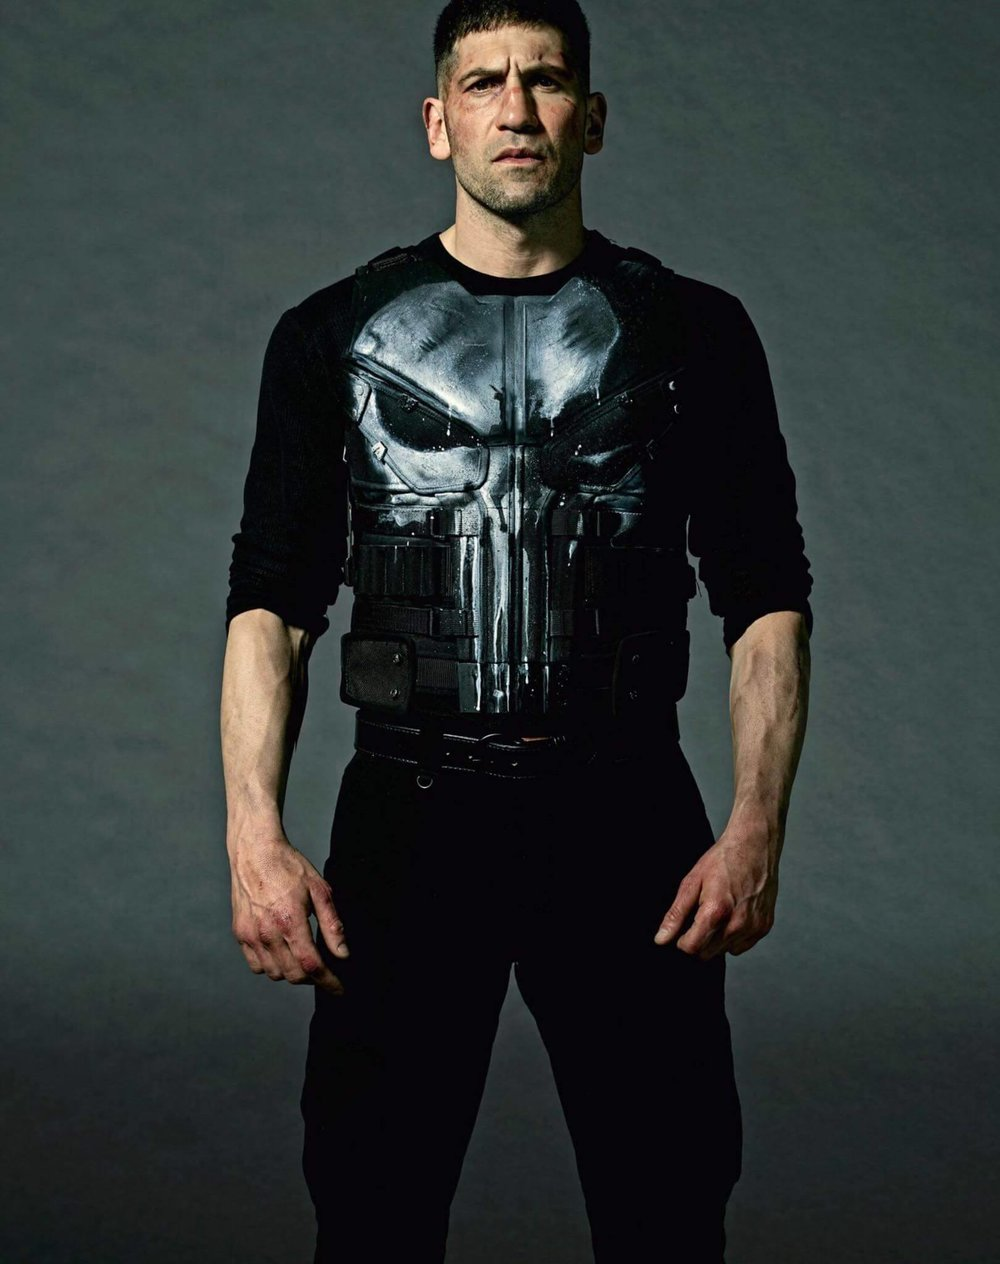 the-punisher-series-will-include-the-battle-van-plus-we-have-new-photos-of-jon-bernthal-as-frank-castle1